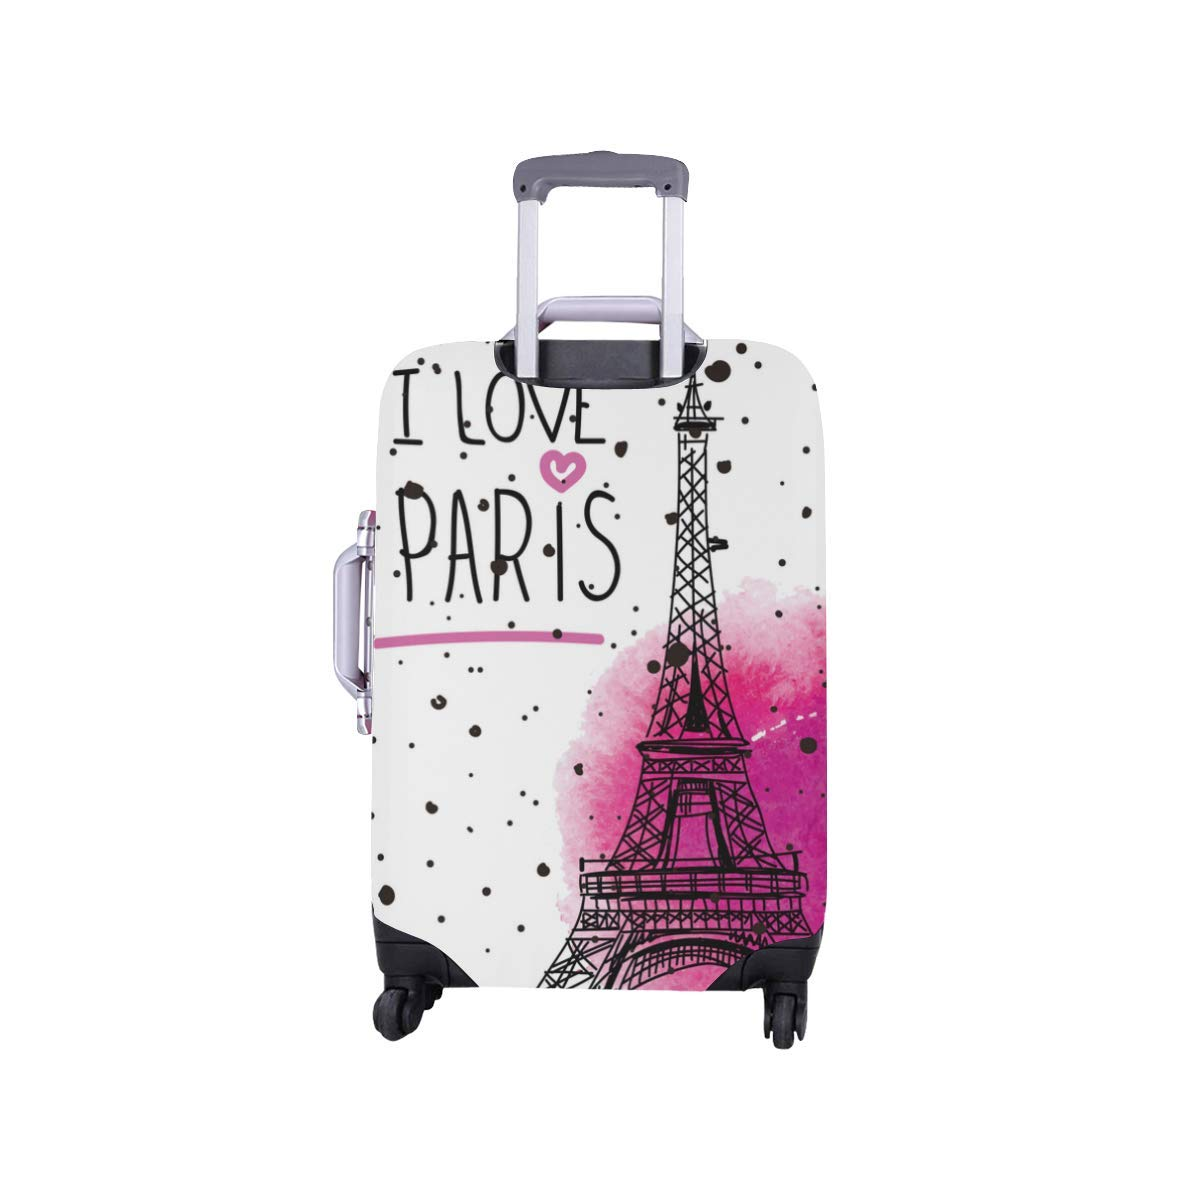 InterestPrint I Love Paris Eiffel Tower Travel Luggage Case Baggage Suitcase Cover Fits 18''-21'' Luggage by InterestPrint (Image #2)